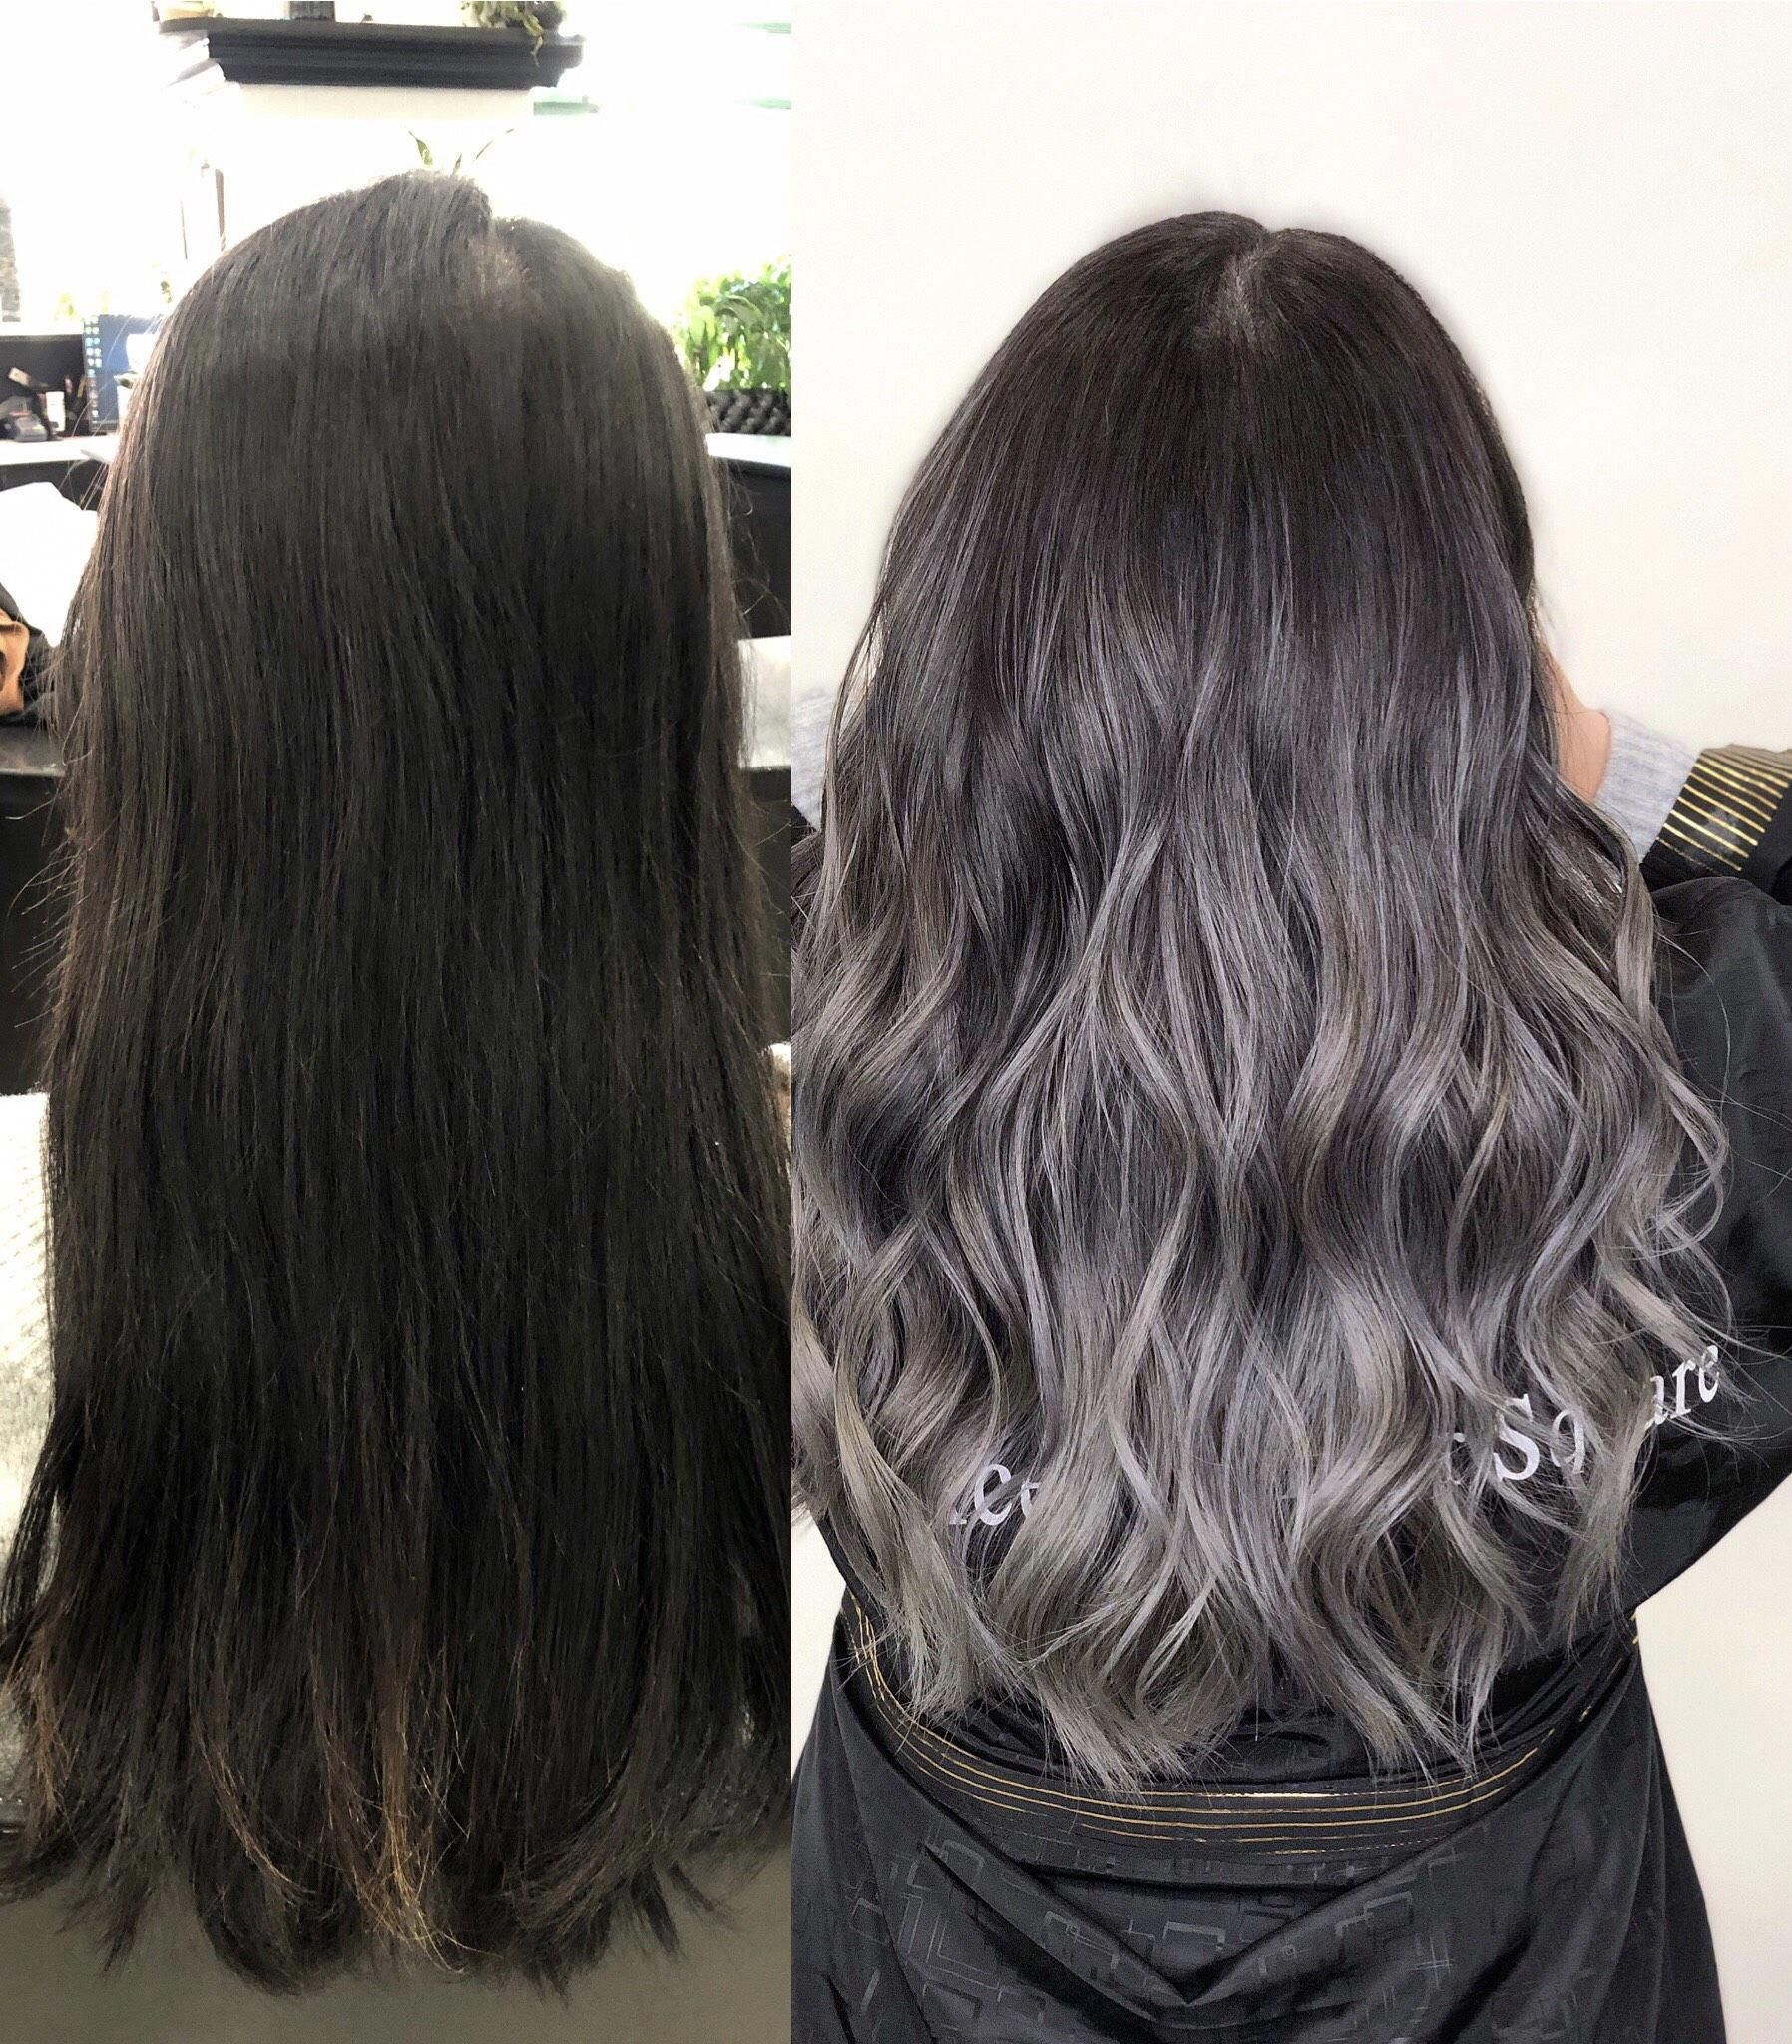 Xcellent Hair Square On Instagram From Black Hair To Ash Grey Balayage Ombre Highlights Swipe For In 2020 Gray Balayage Gray Hair Highlights Silver Hair Color